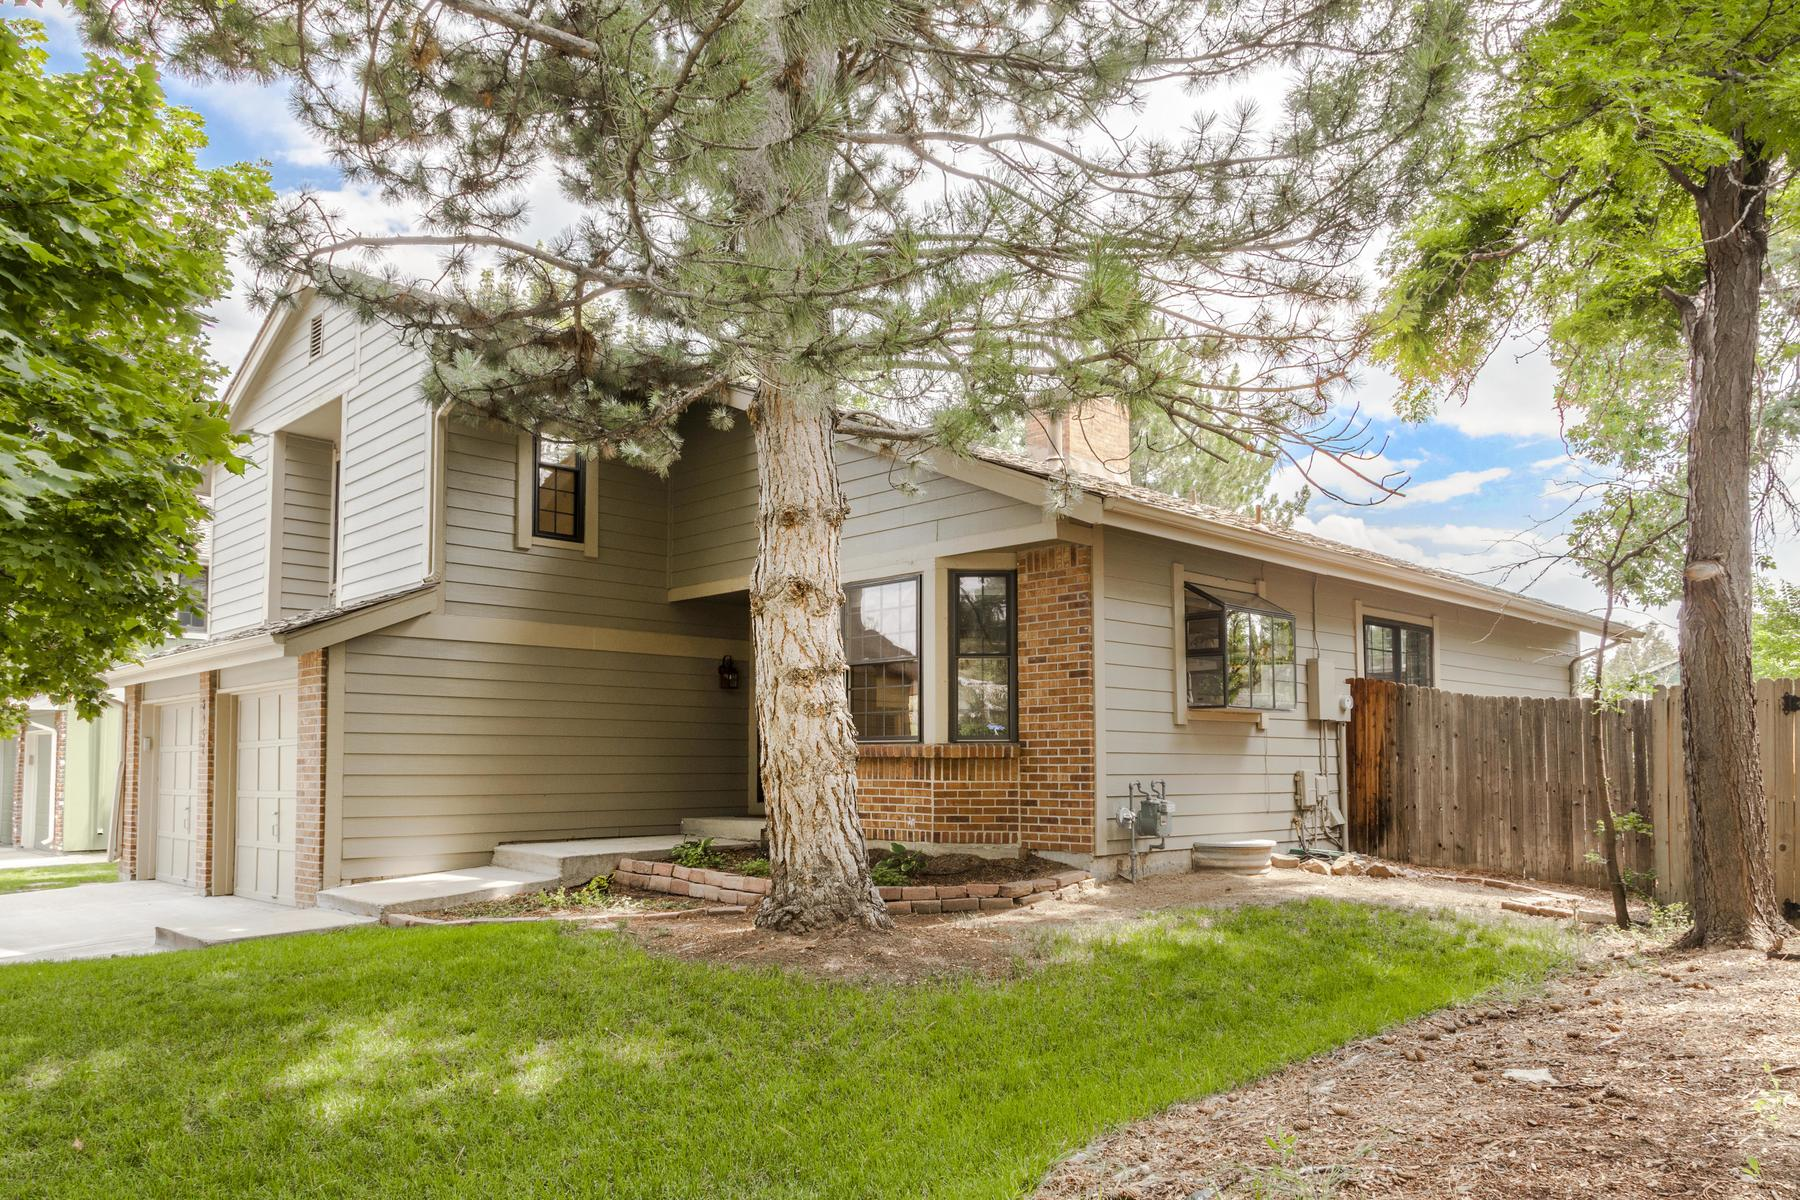 Maison unifamiliale pour l Vente à Updated, Bright, And Impeccably Well-Maintained, This Meadowglen Home Is A Gem 8952 West 81st Lane Arvada, Colorado, 80005 États-Unis